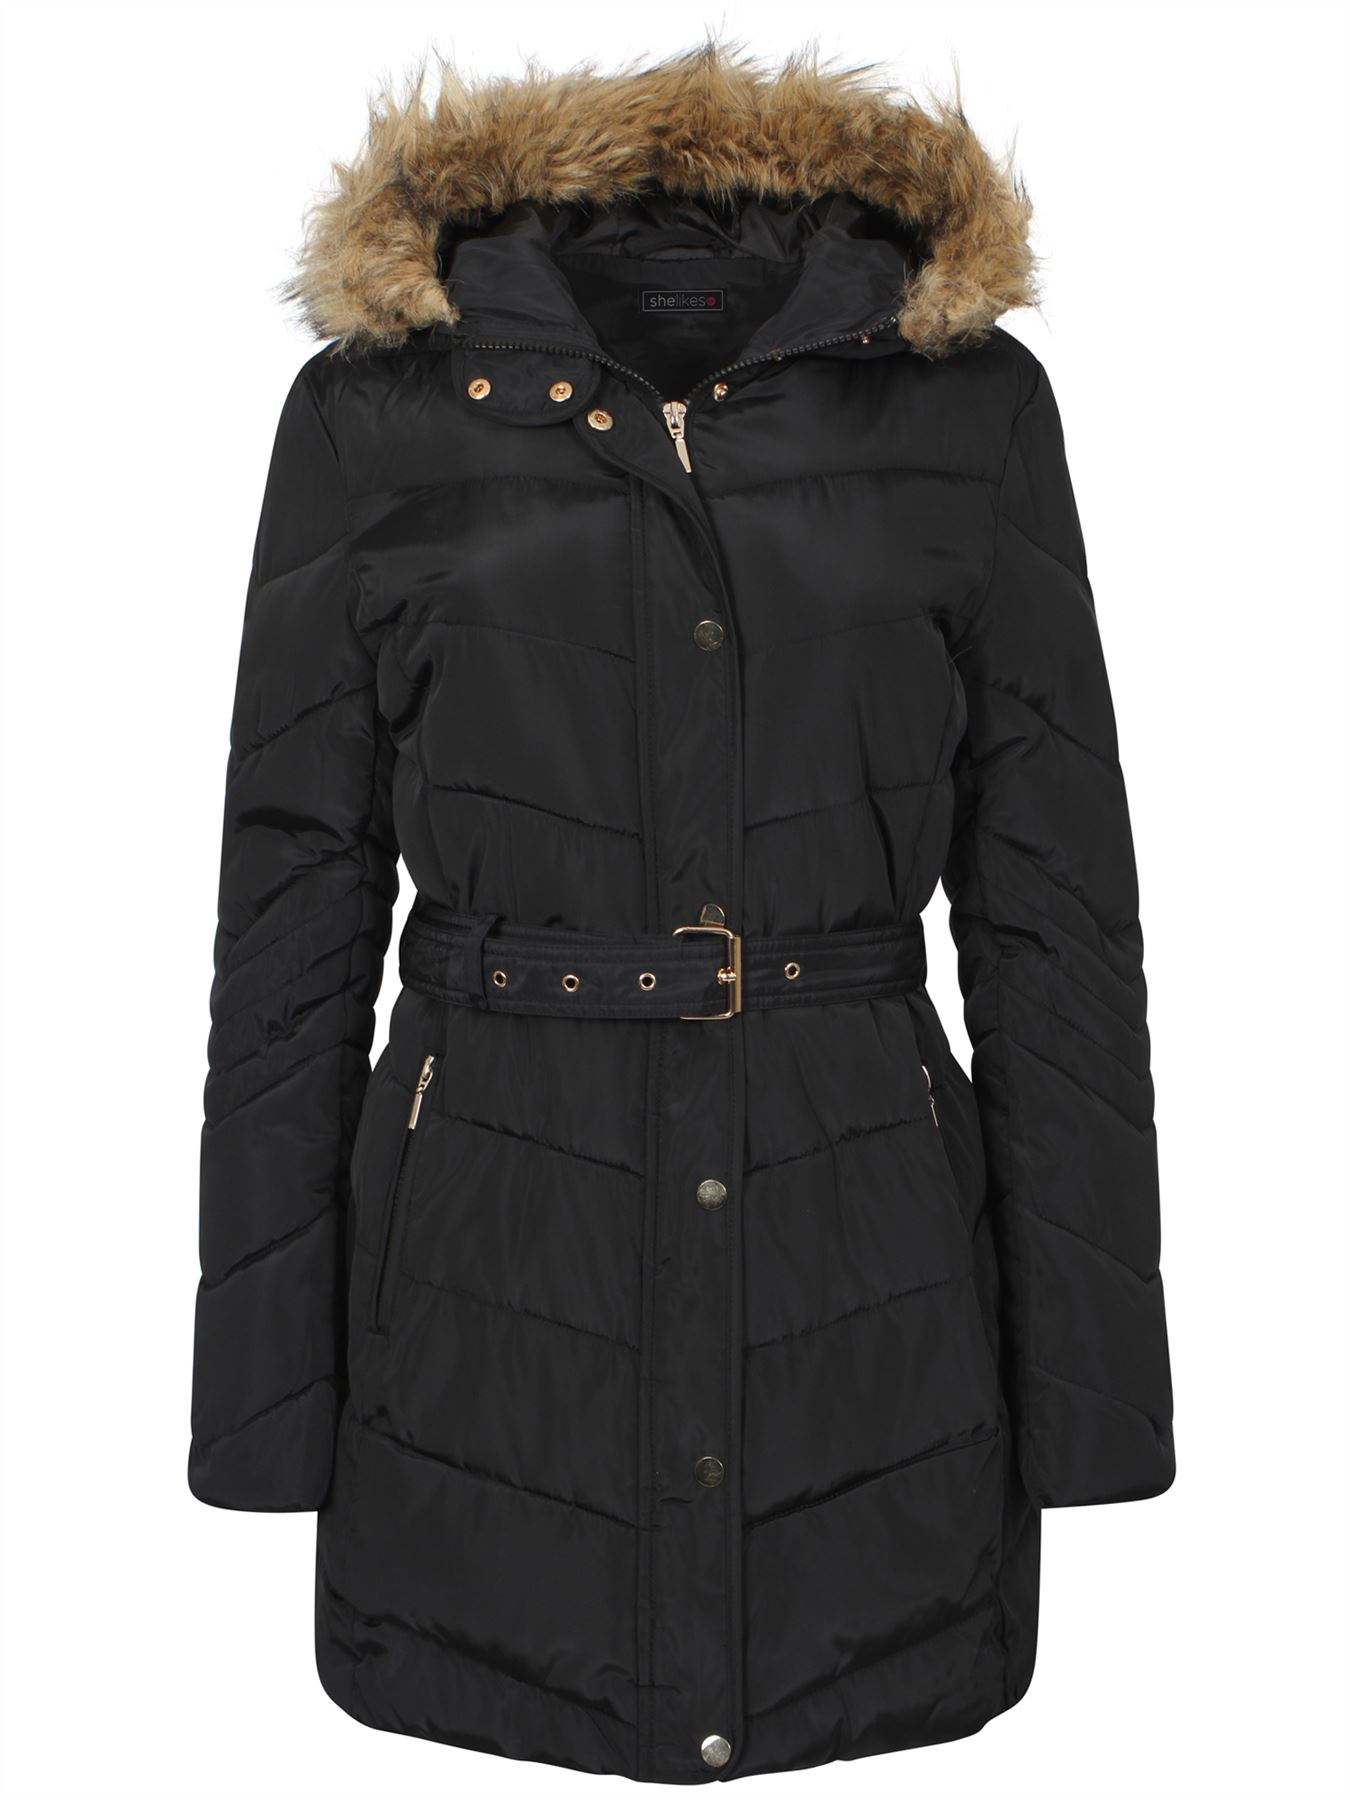 Womens-Coat-Parka-Waist-Belt-Fur-Zipped-Padded-Quilted-Jacket-Black-Hood-UK-8-16 thumbnail 3